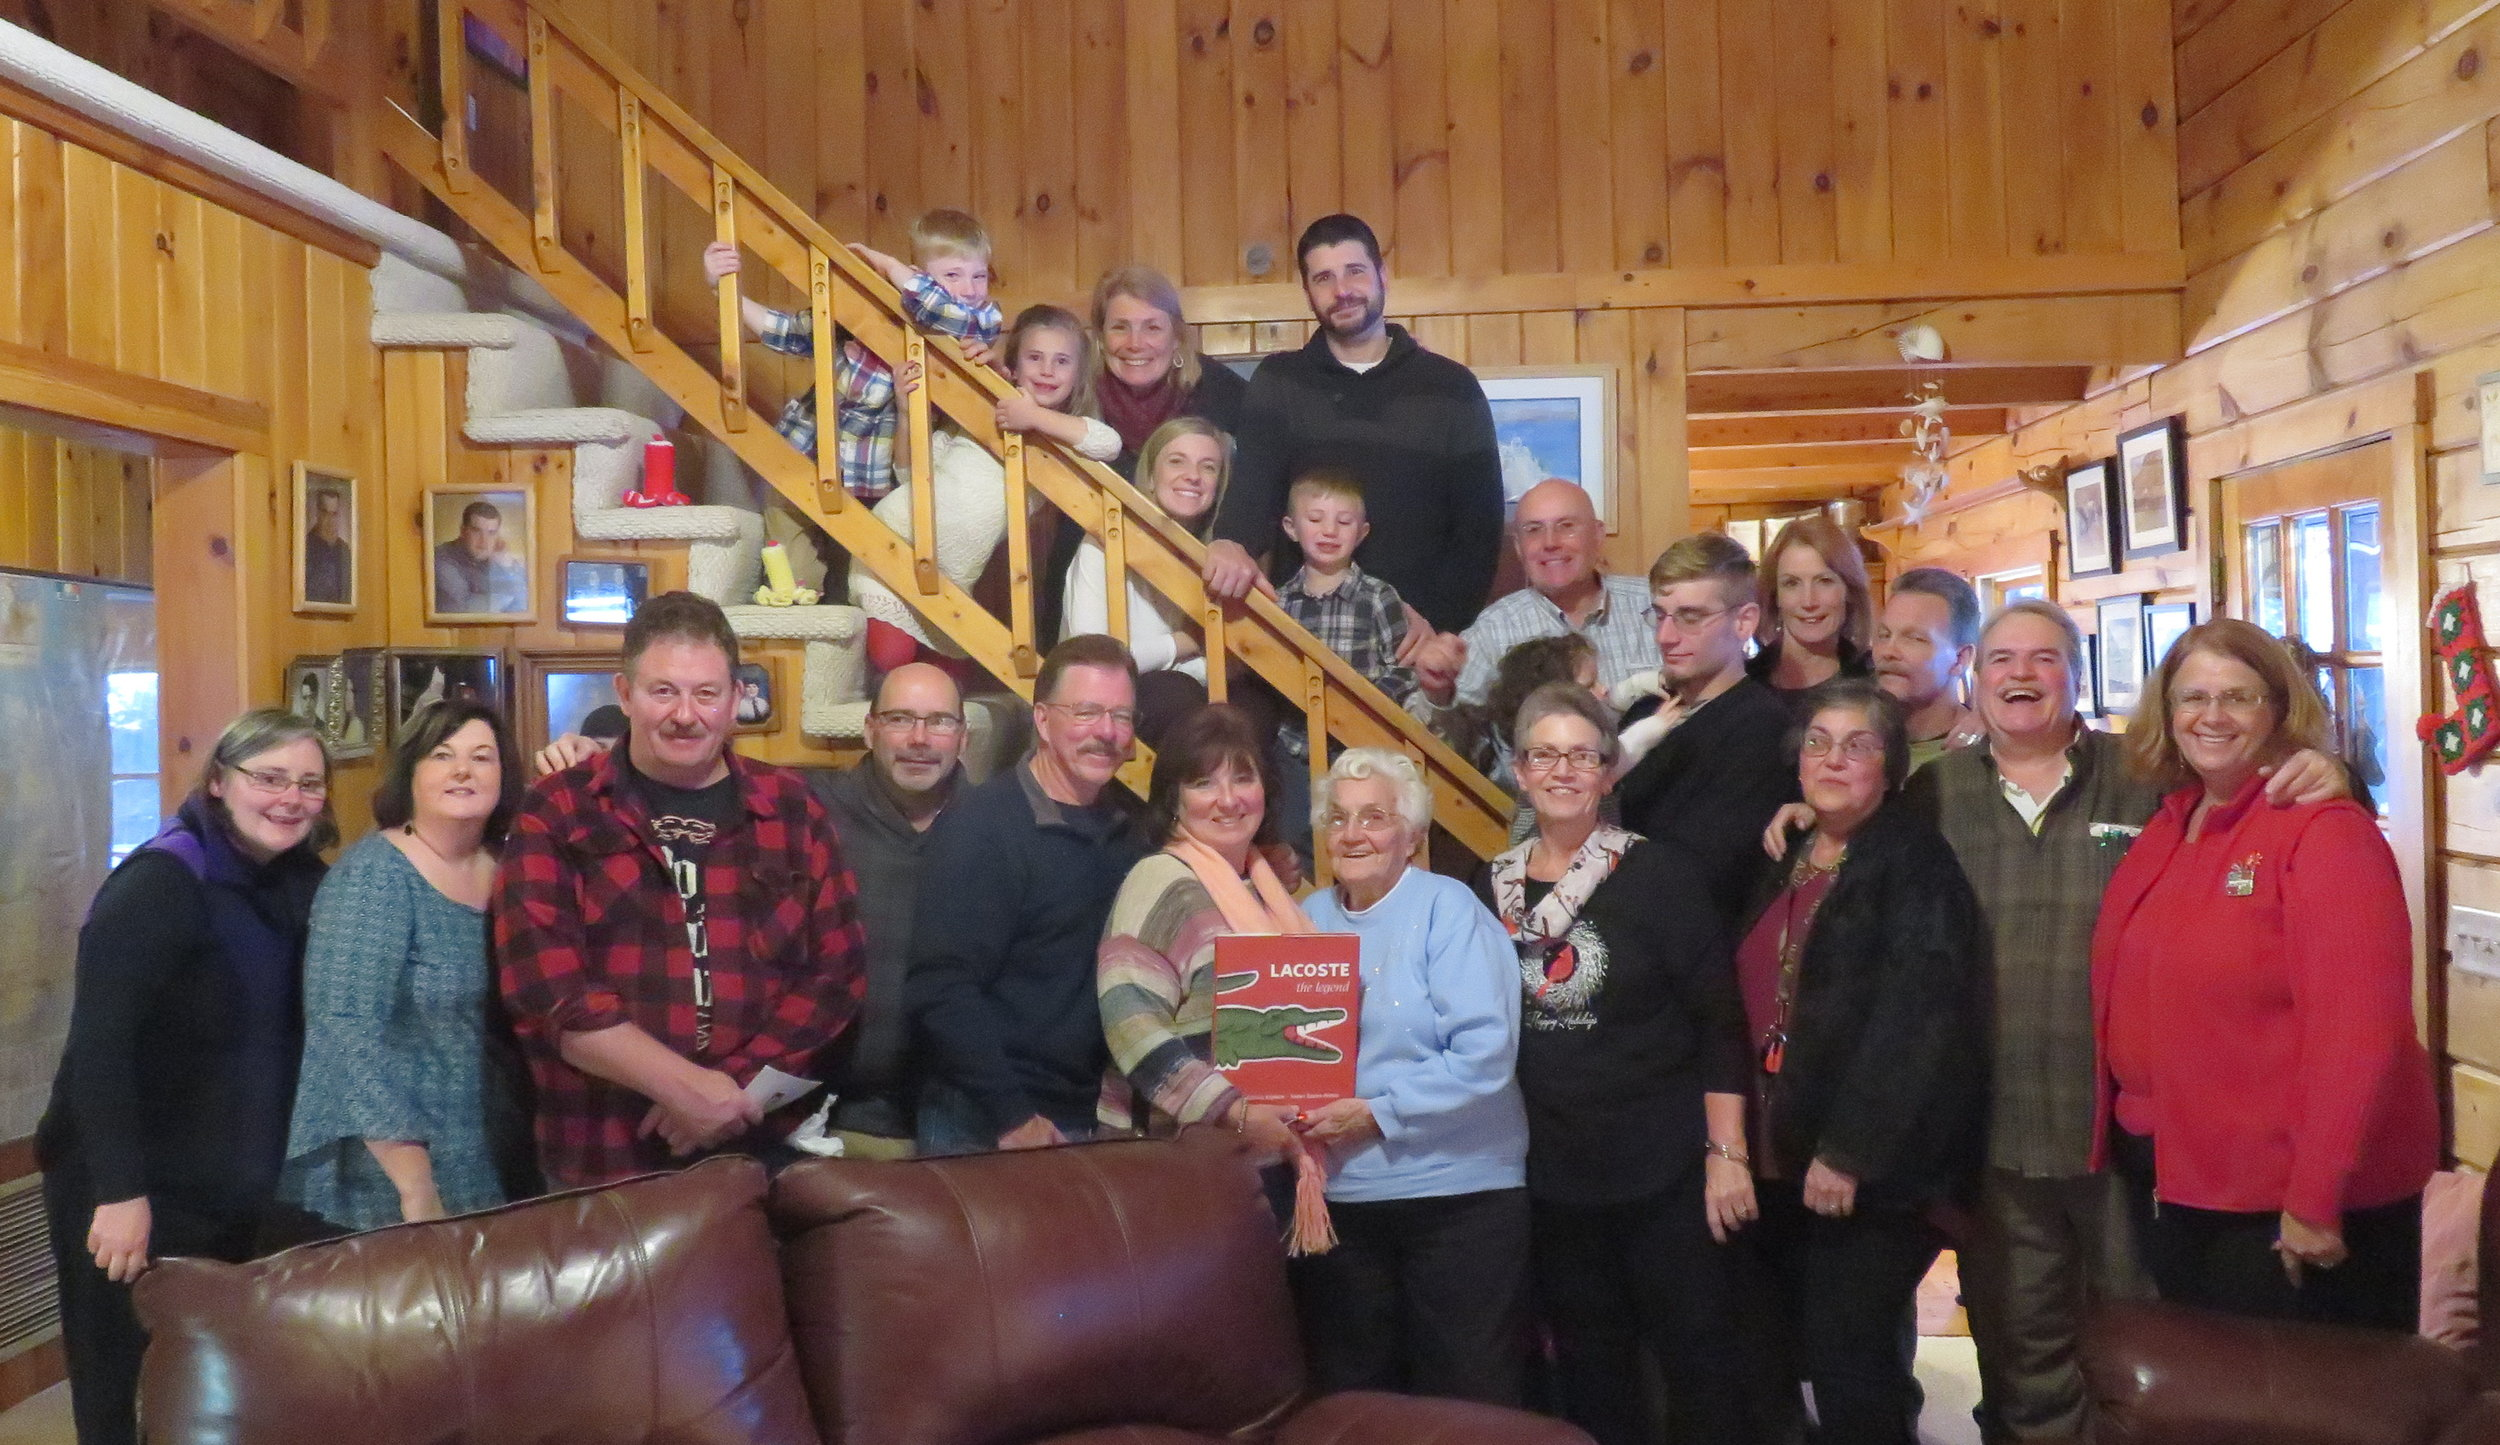 Cousins Christmas 2017 - David's taking the picture!